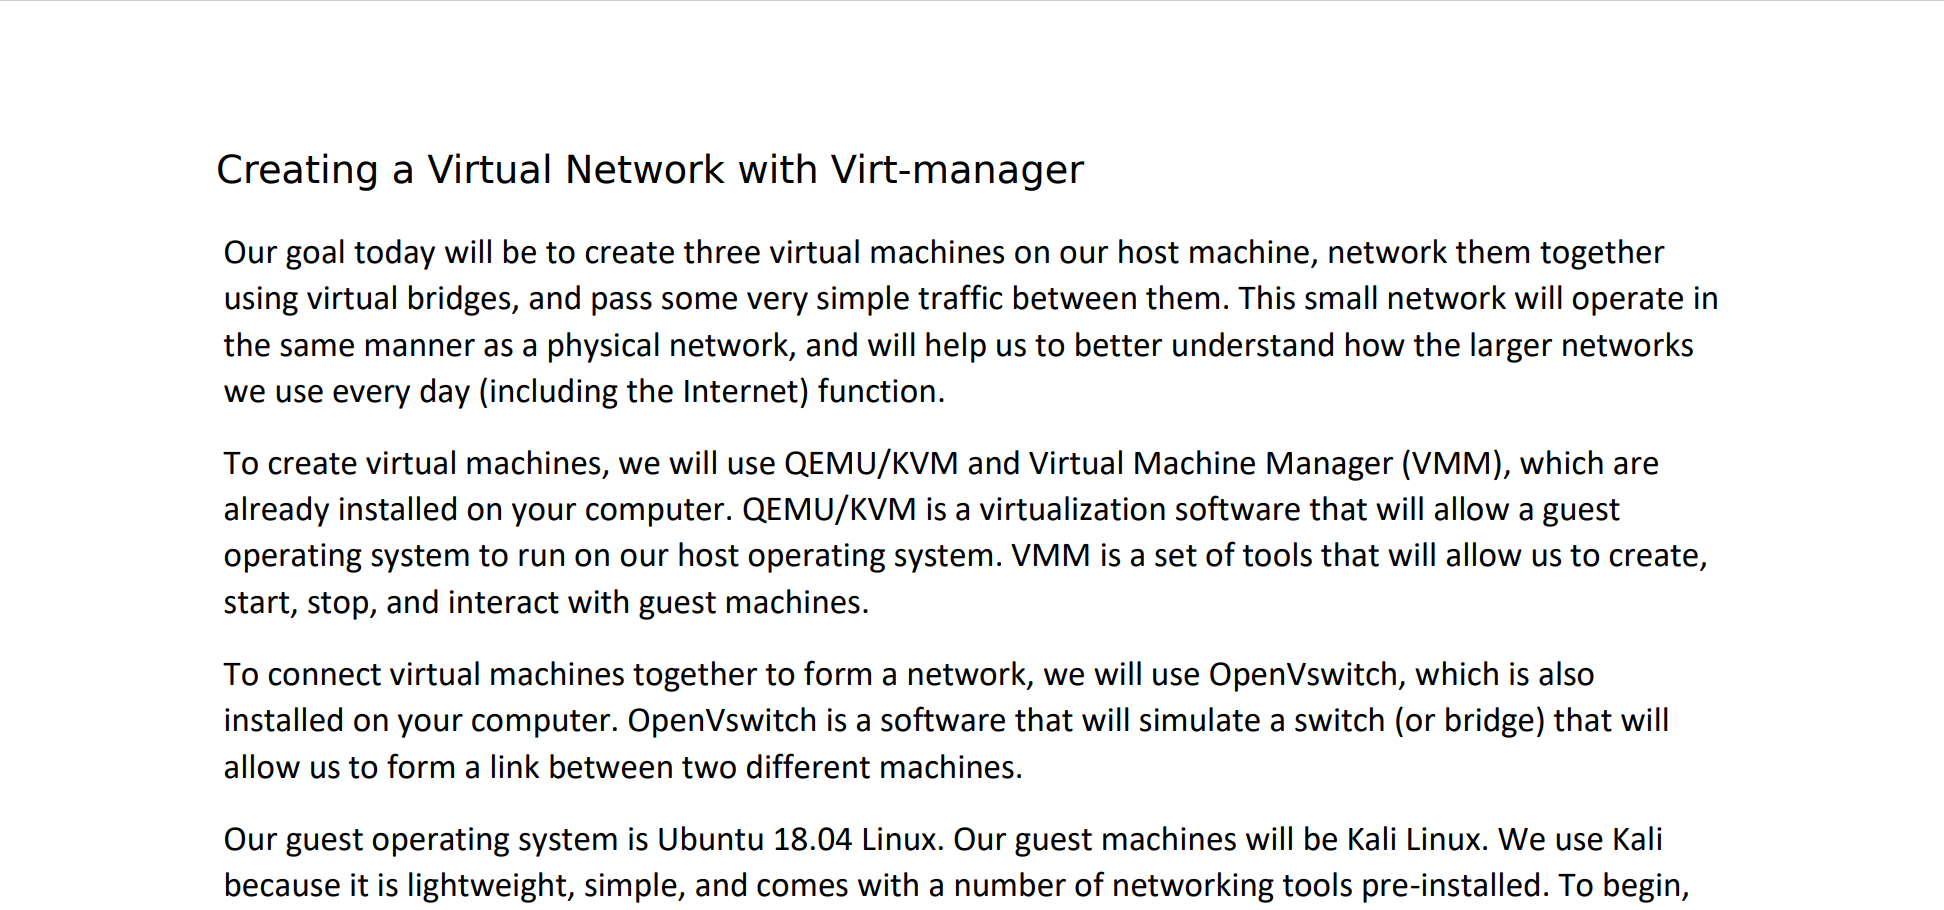 Creating a Virtual Network with Virt-manager